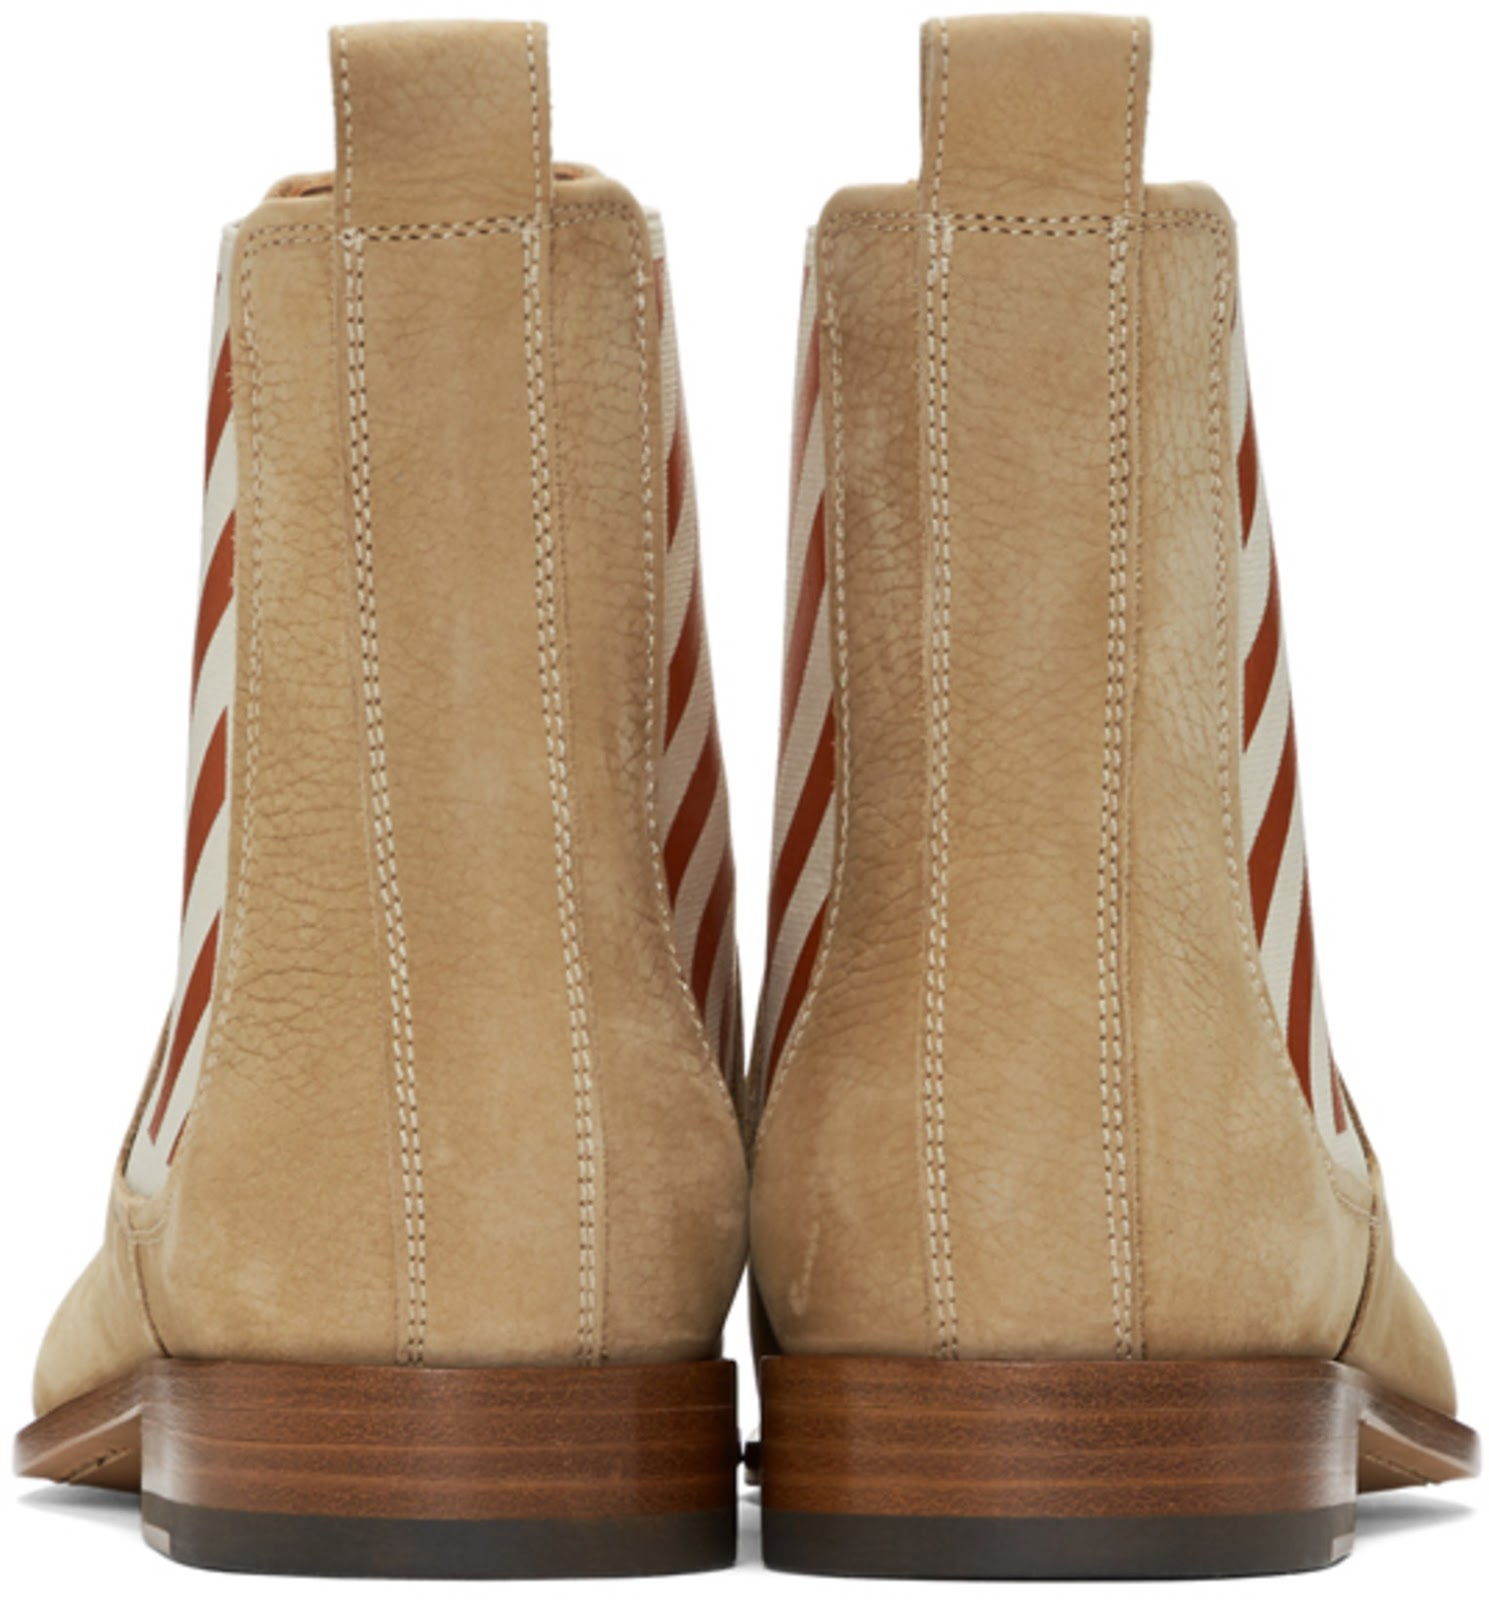 8c1f9715cc1 Reboot With Caution: Off-White Chelsea Boots | SHOEOGRAPHY